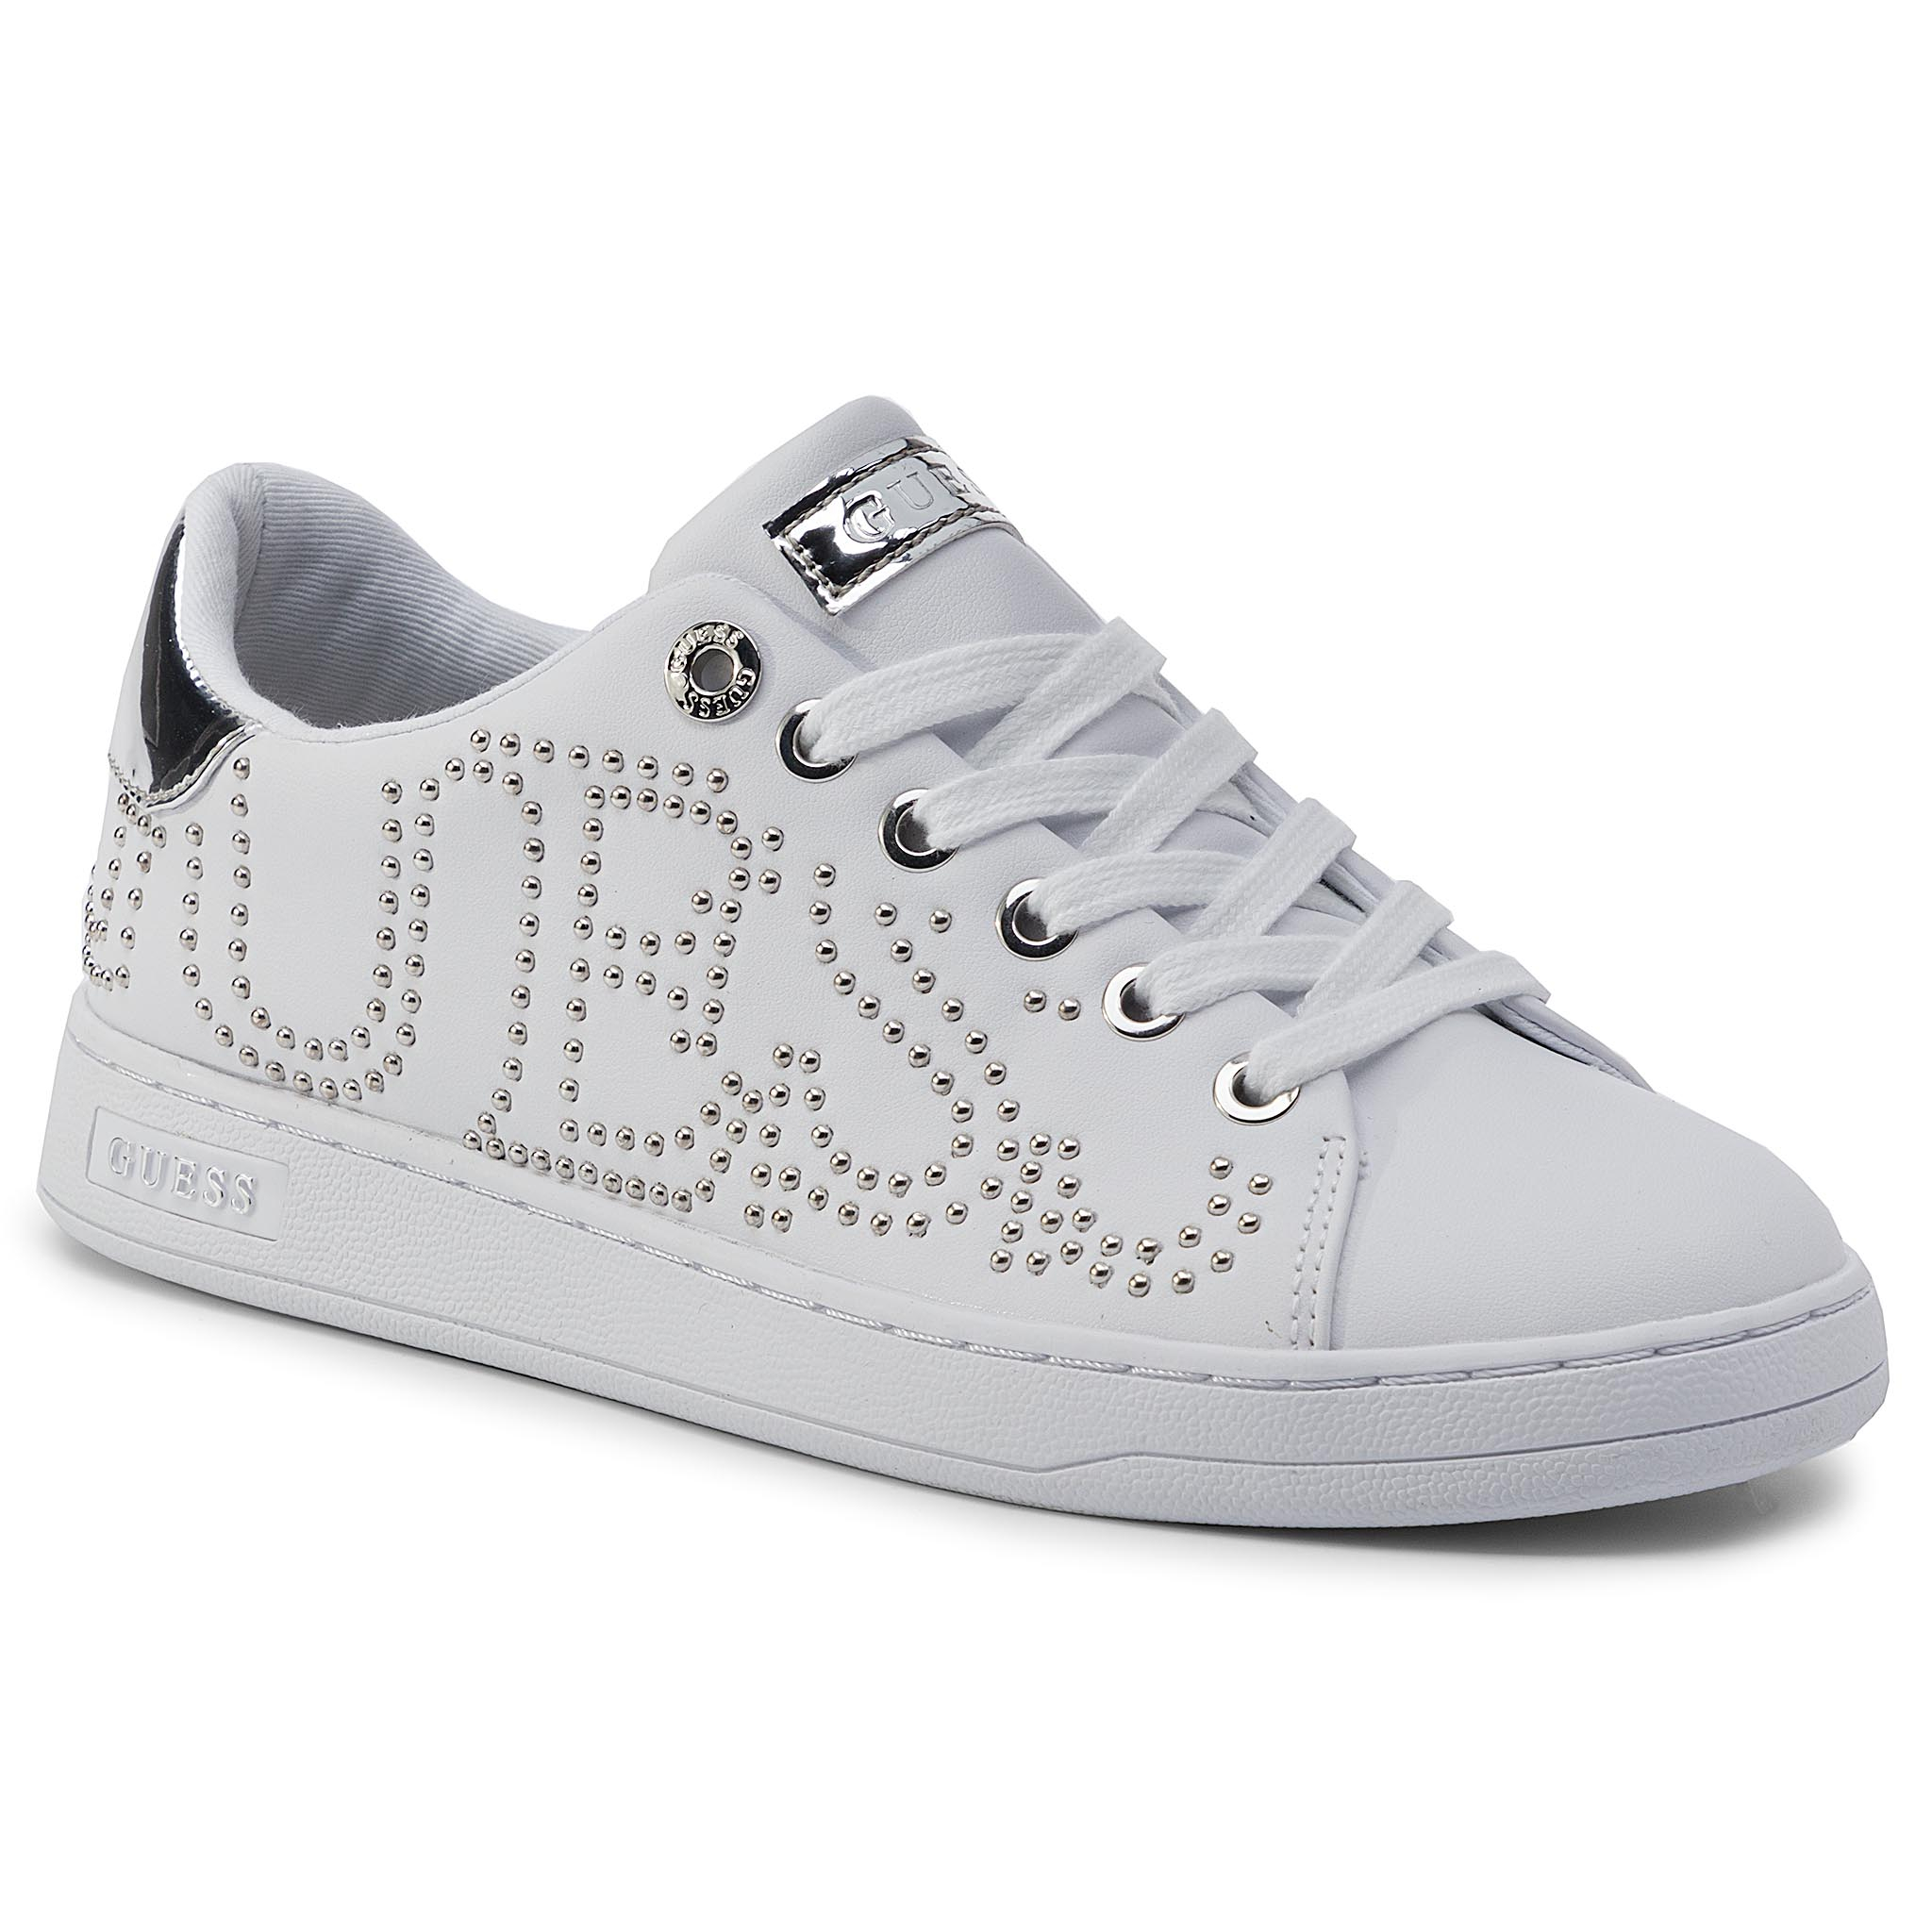 Sneakers GUESS - Cater FL7CAT ELE12 WHISI